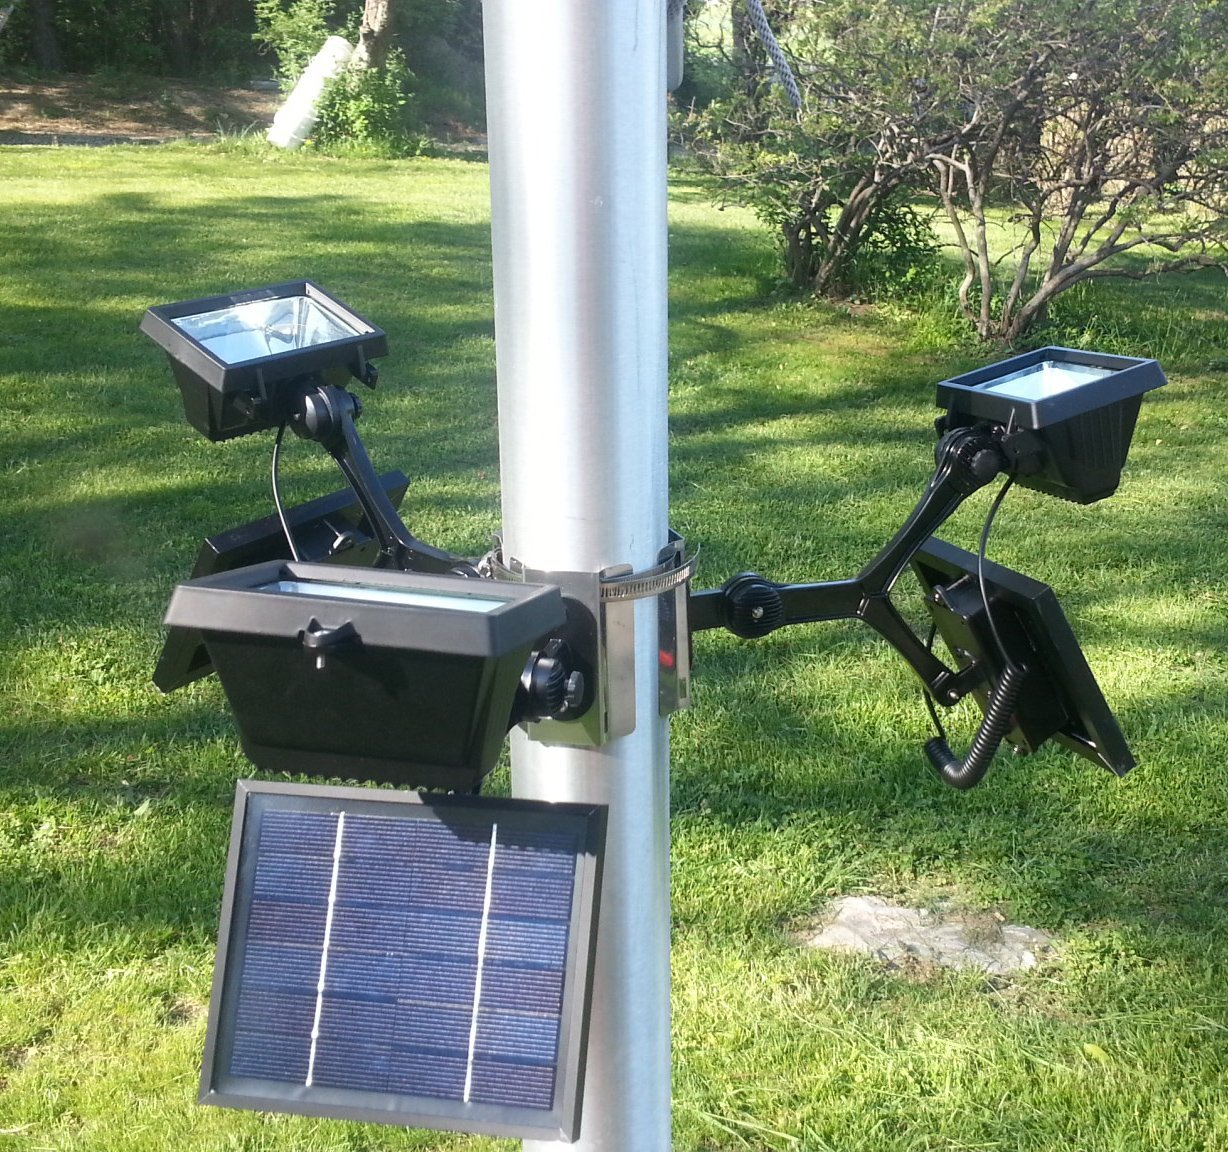 Commercial solar flagpole light 360 degrees extreme commercial solar flagpole light 360 degrees arubaitofo Image collections